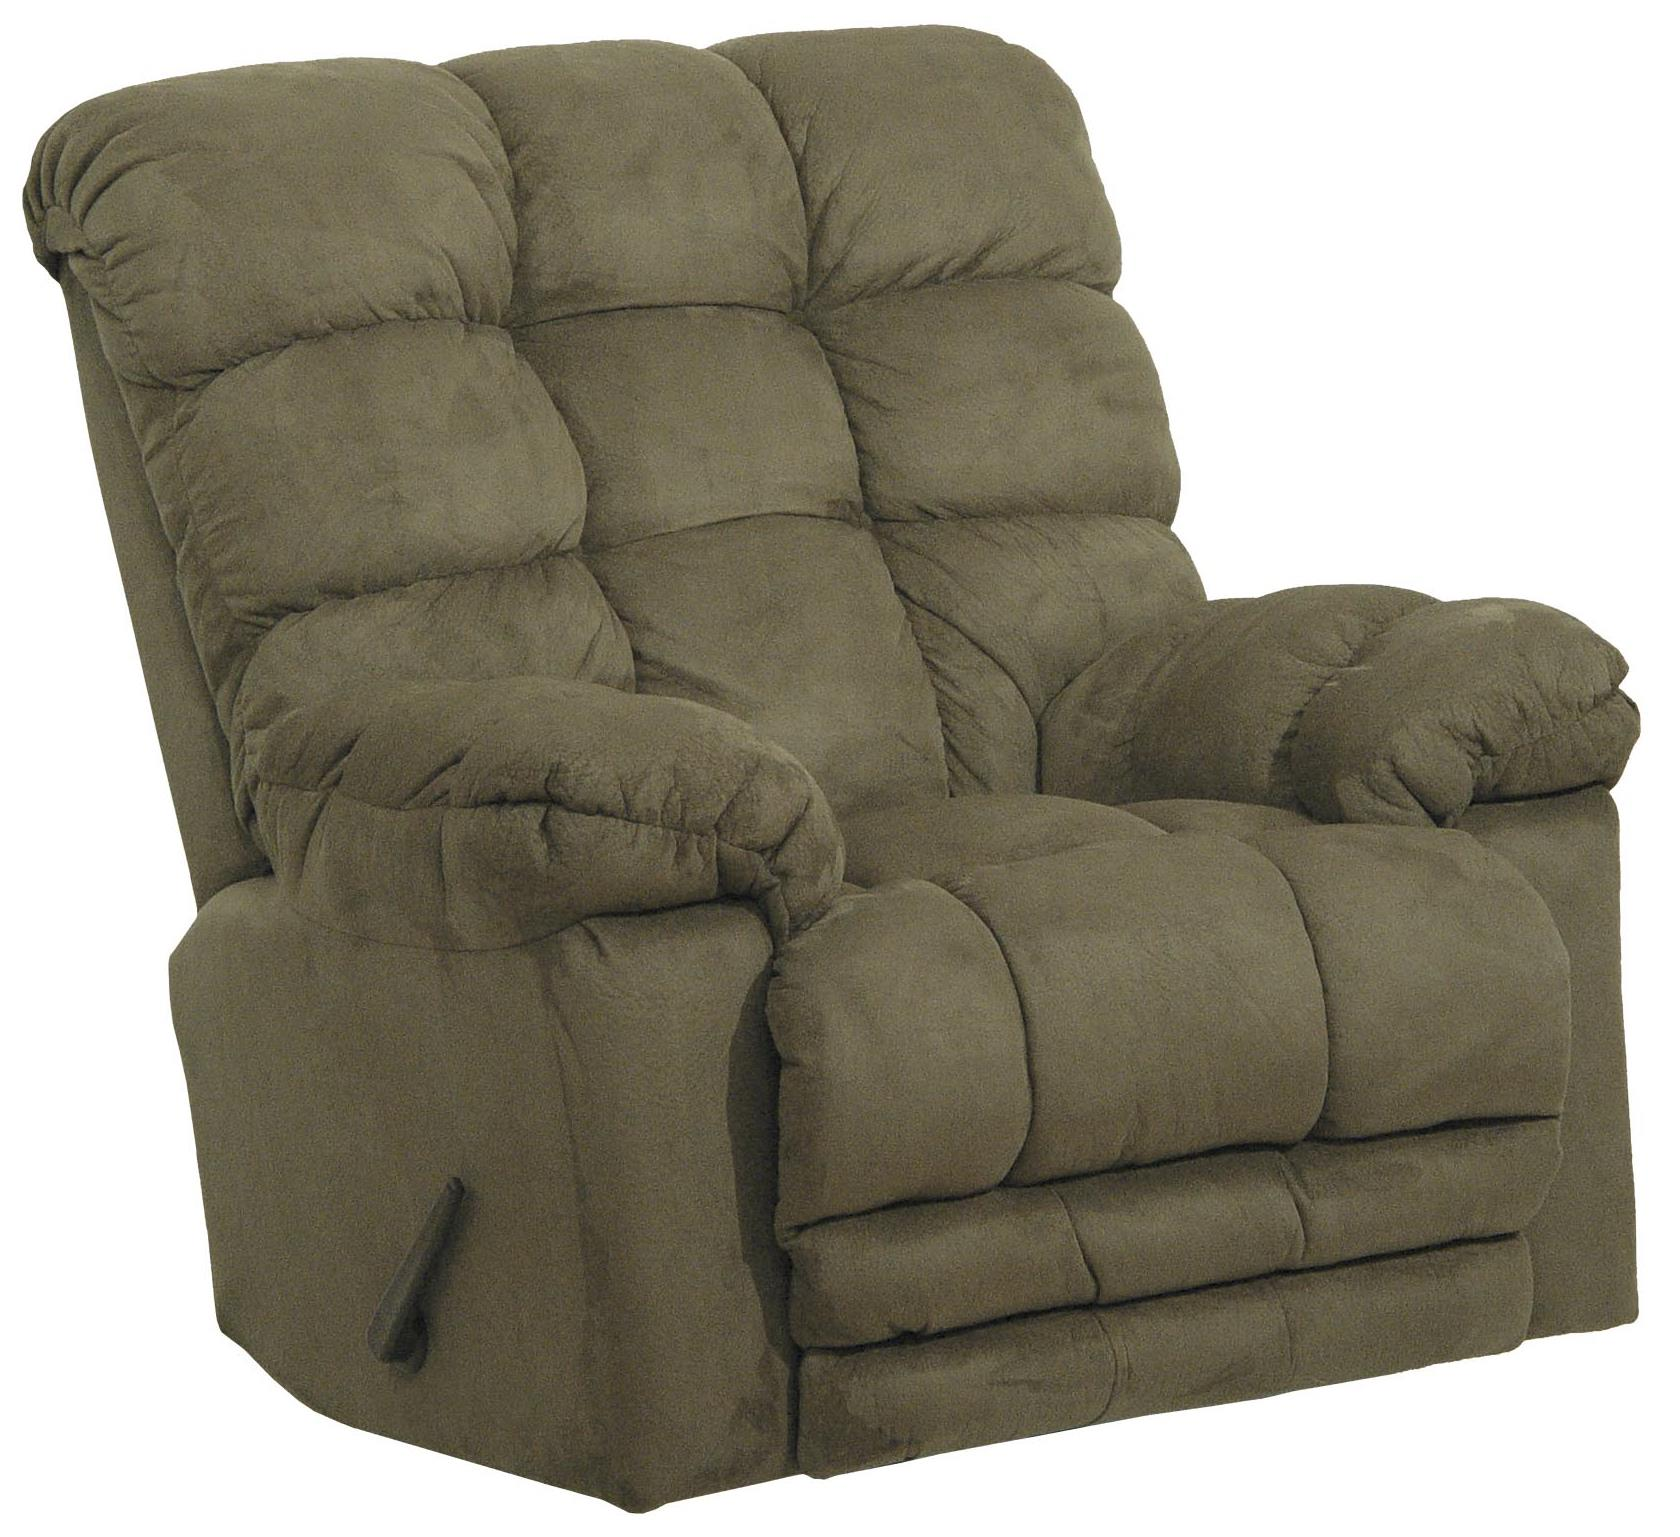 Catnapper Motion Chairs And Recliners 54689 2 Magnum